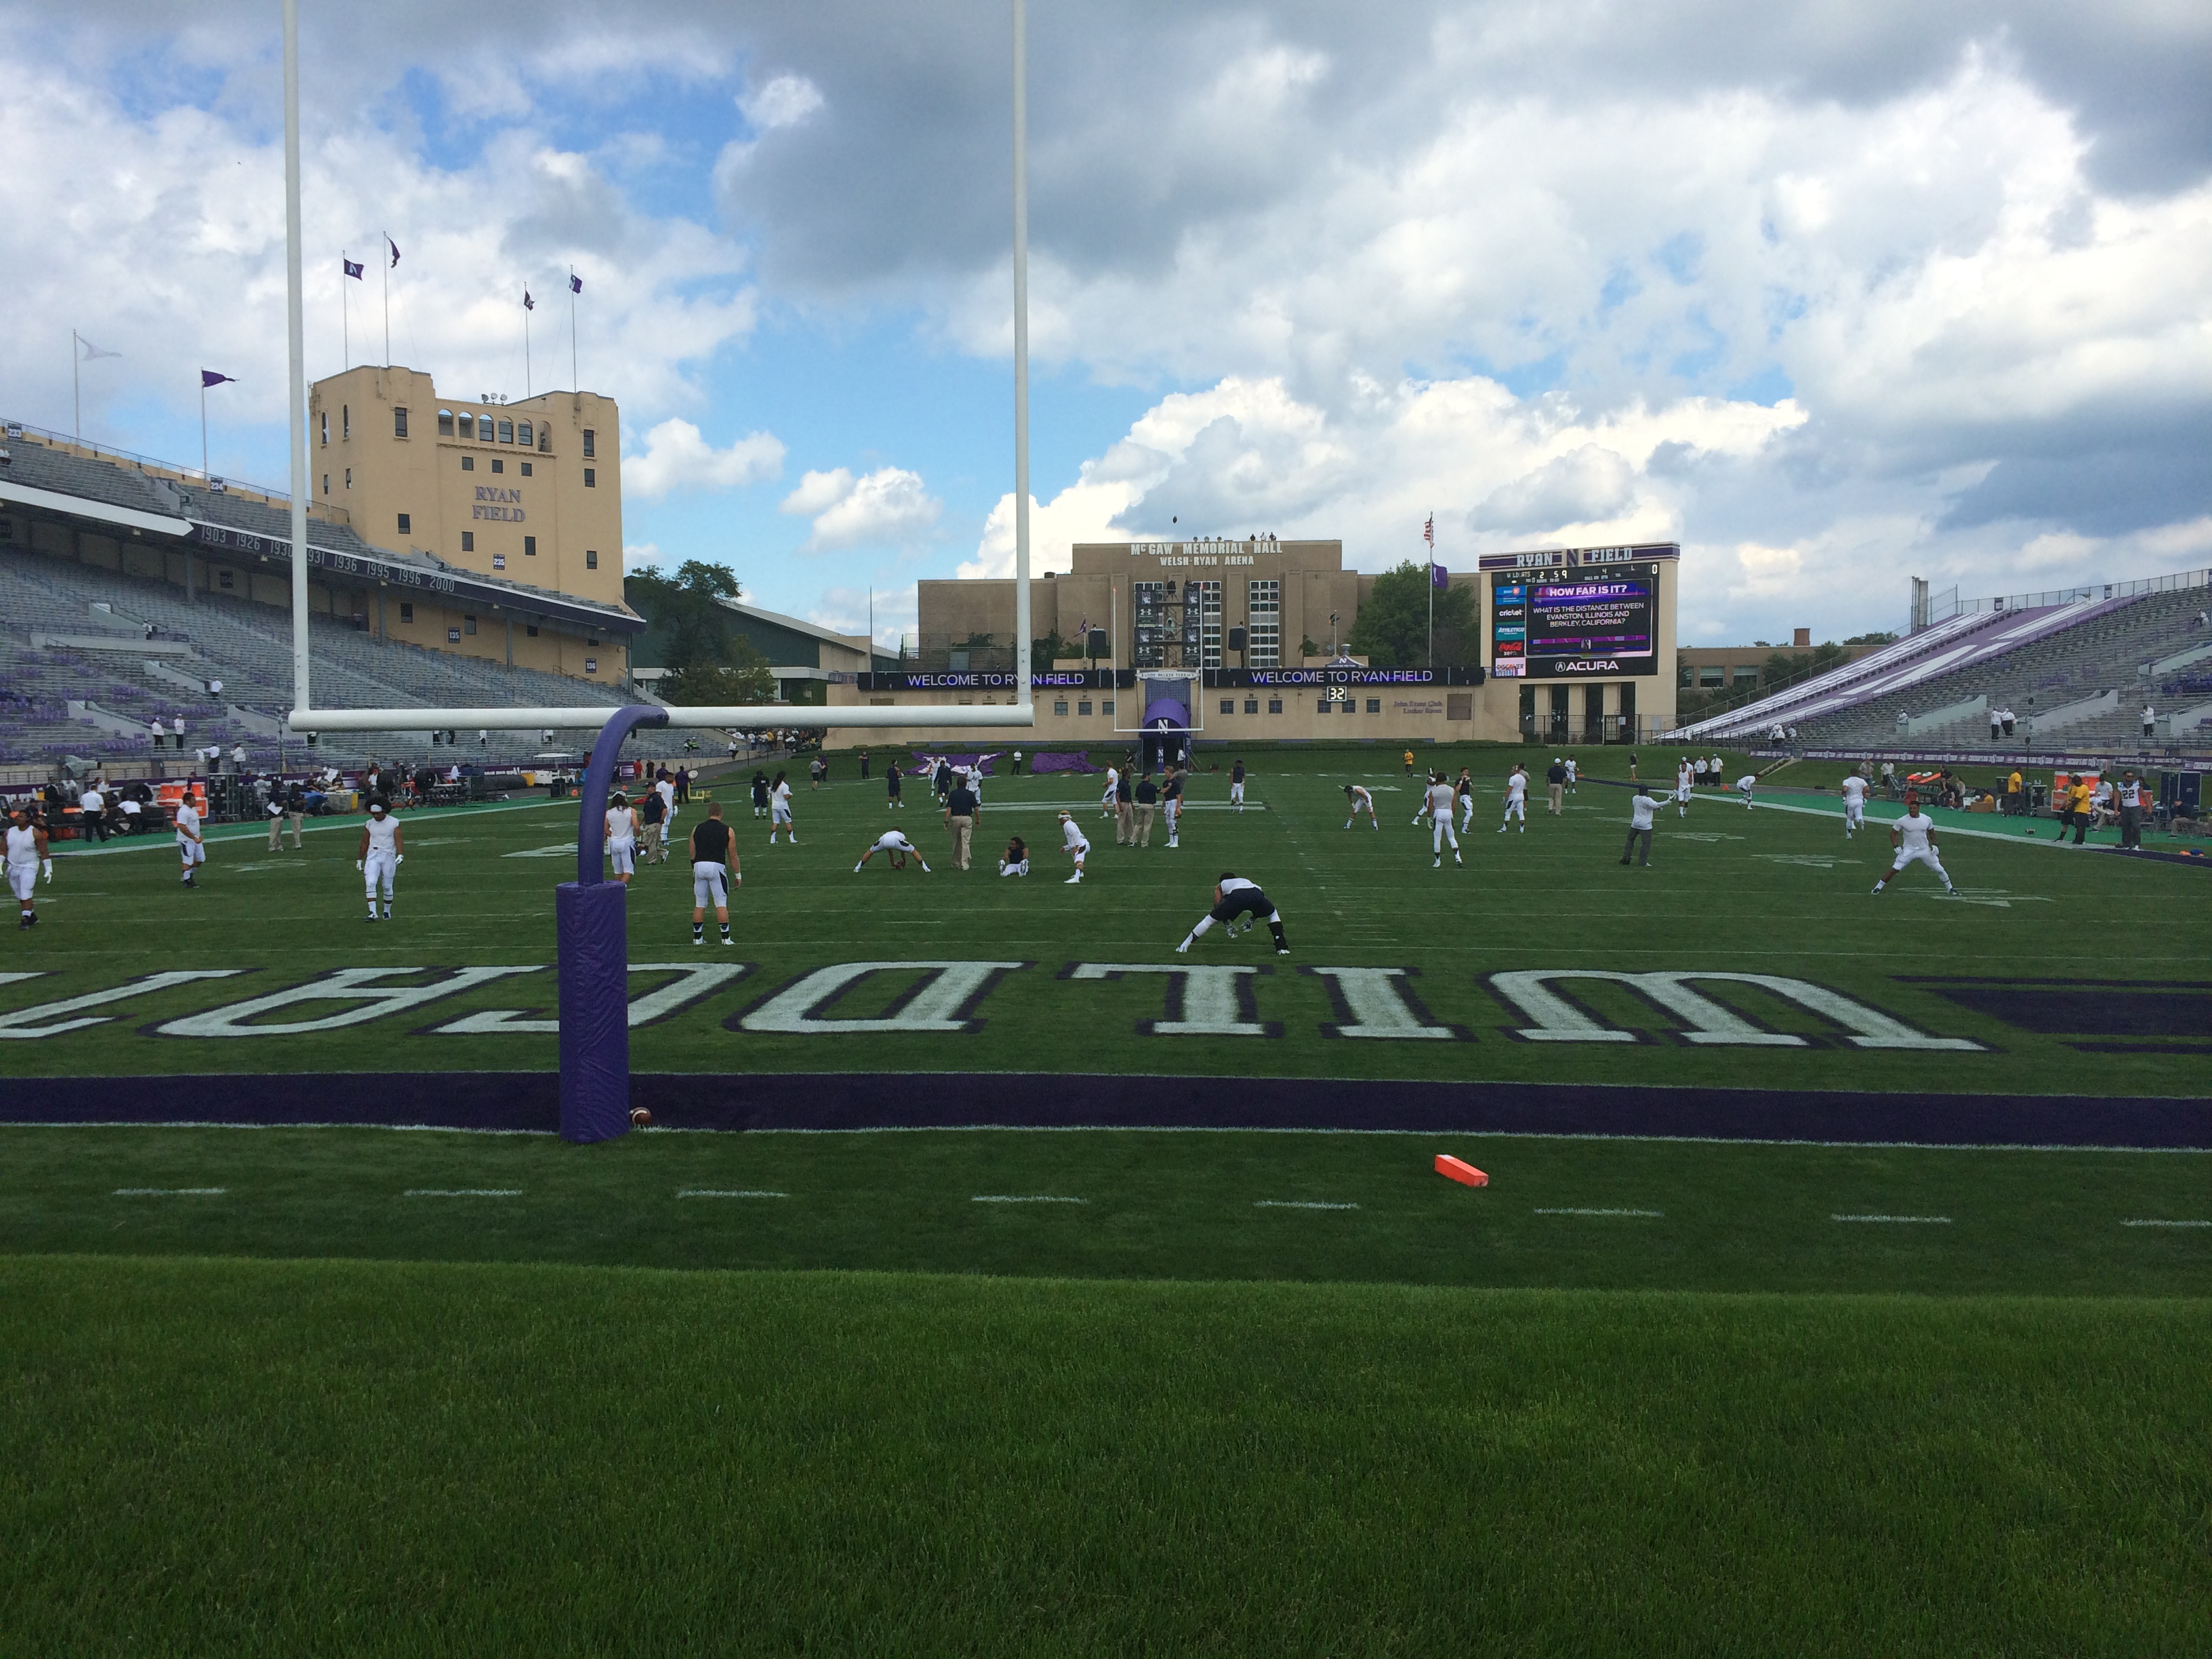 2014 08 30 12.57.27 Chicago Video Crew kicks off College Football Season at Northwestern